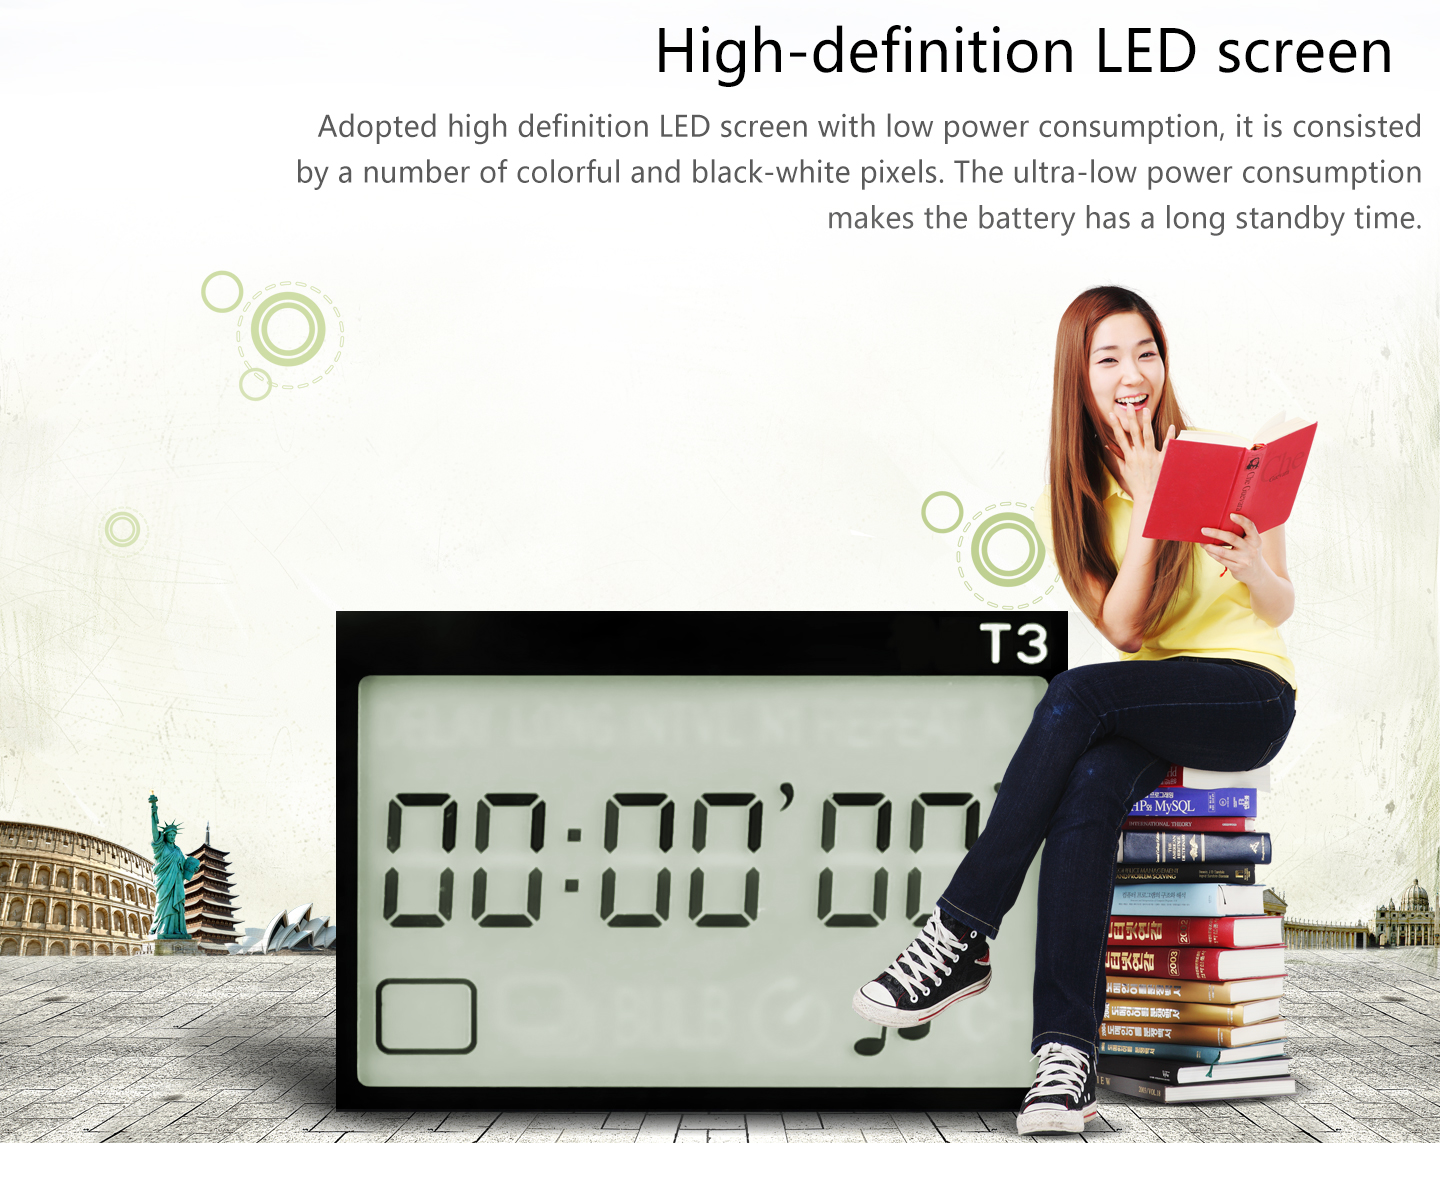 High-definition LED screen